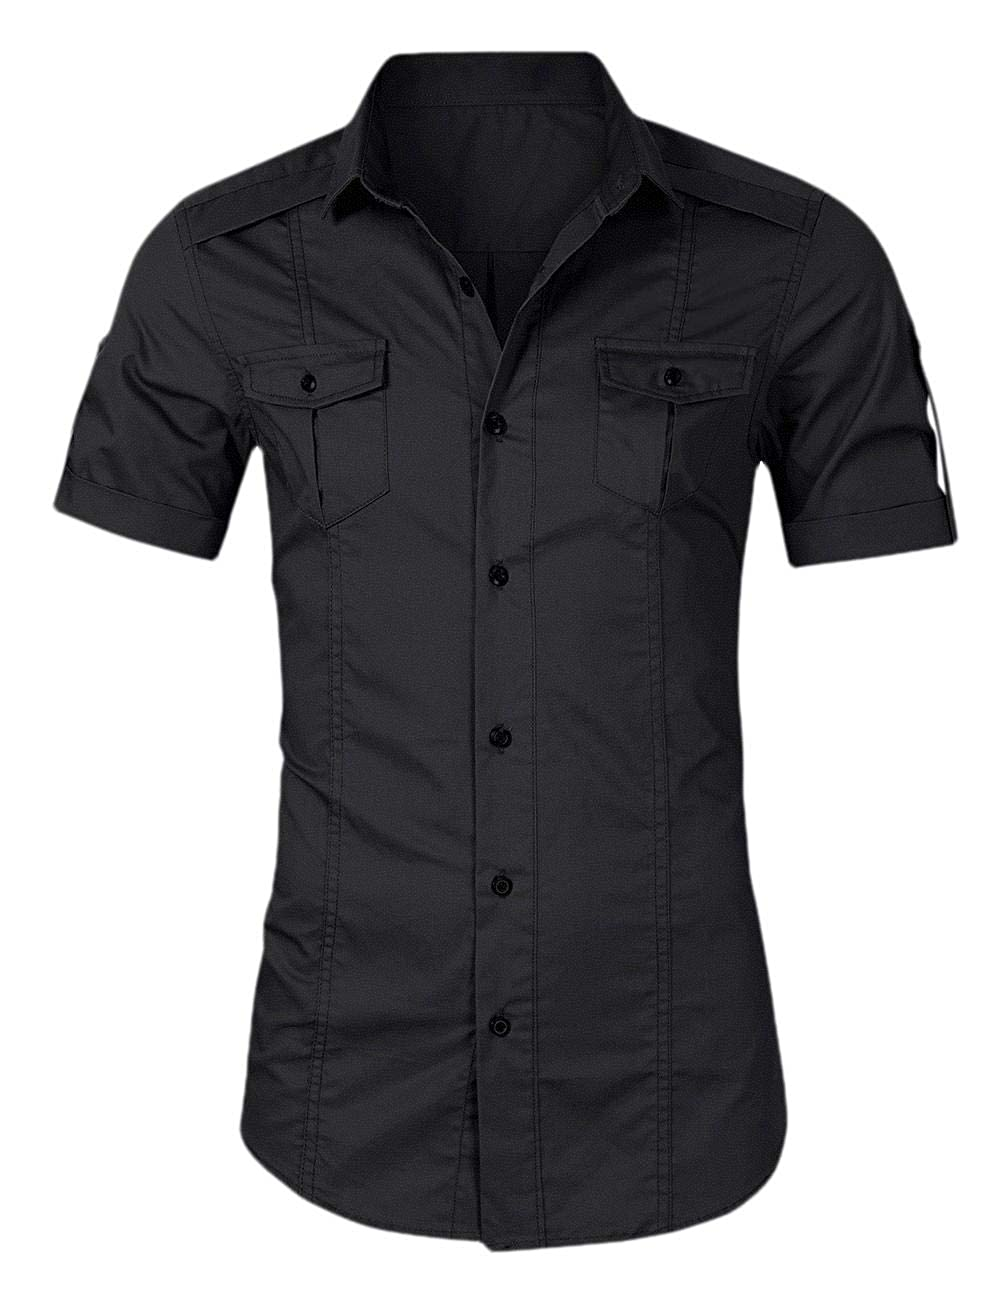 Jmwss QD Mens Short-Sleeve Twill Work Shirts Casual Button Down Shirts